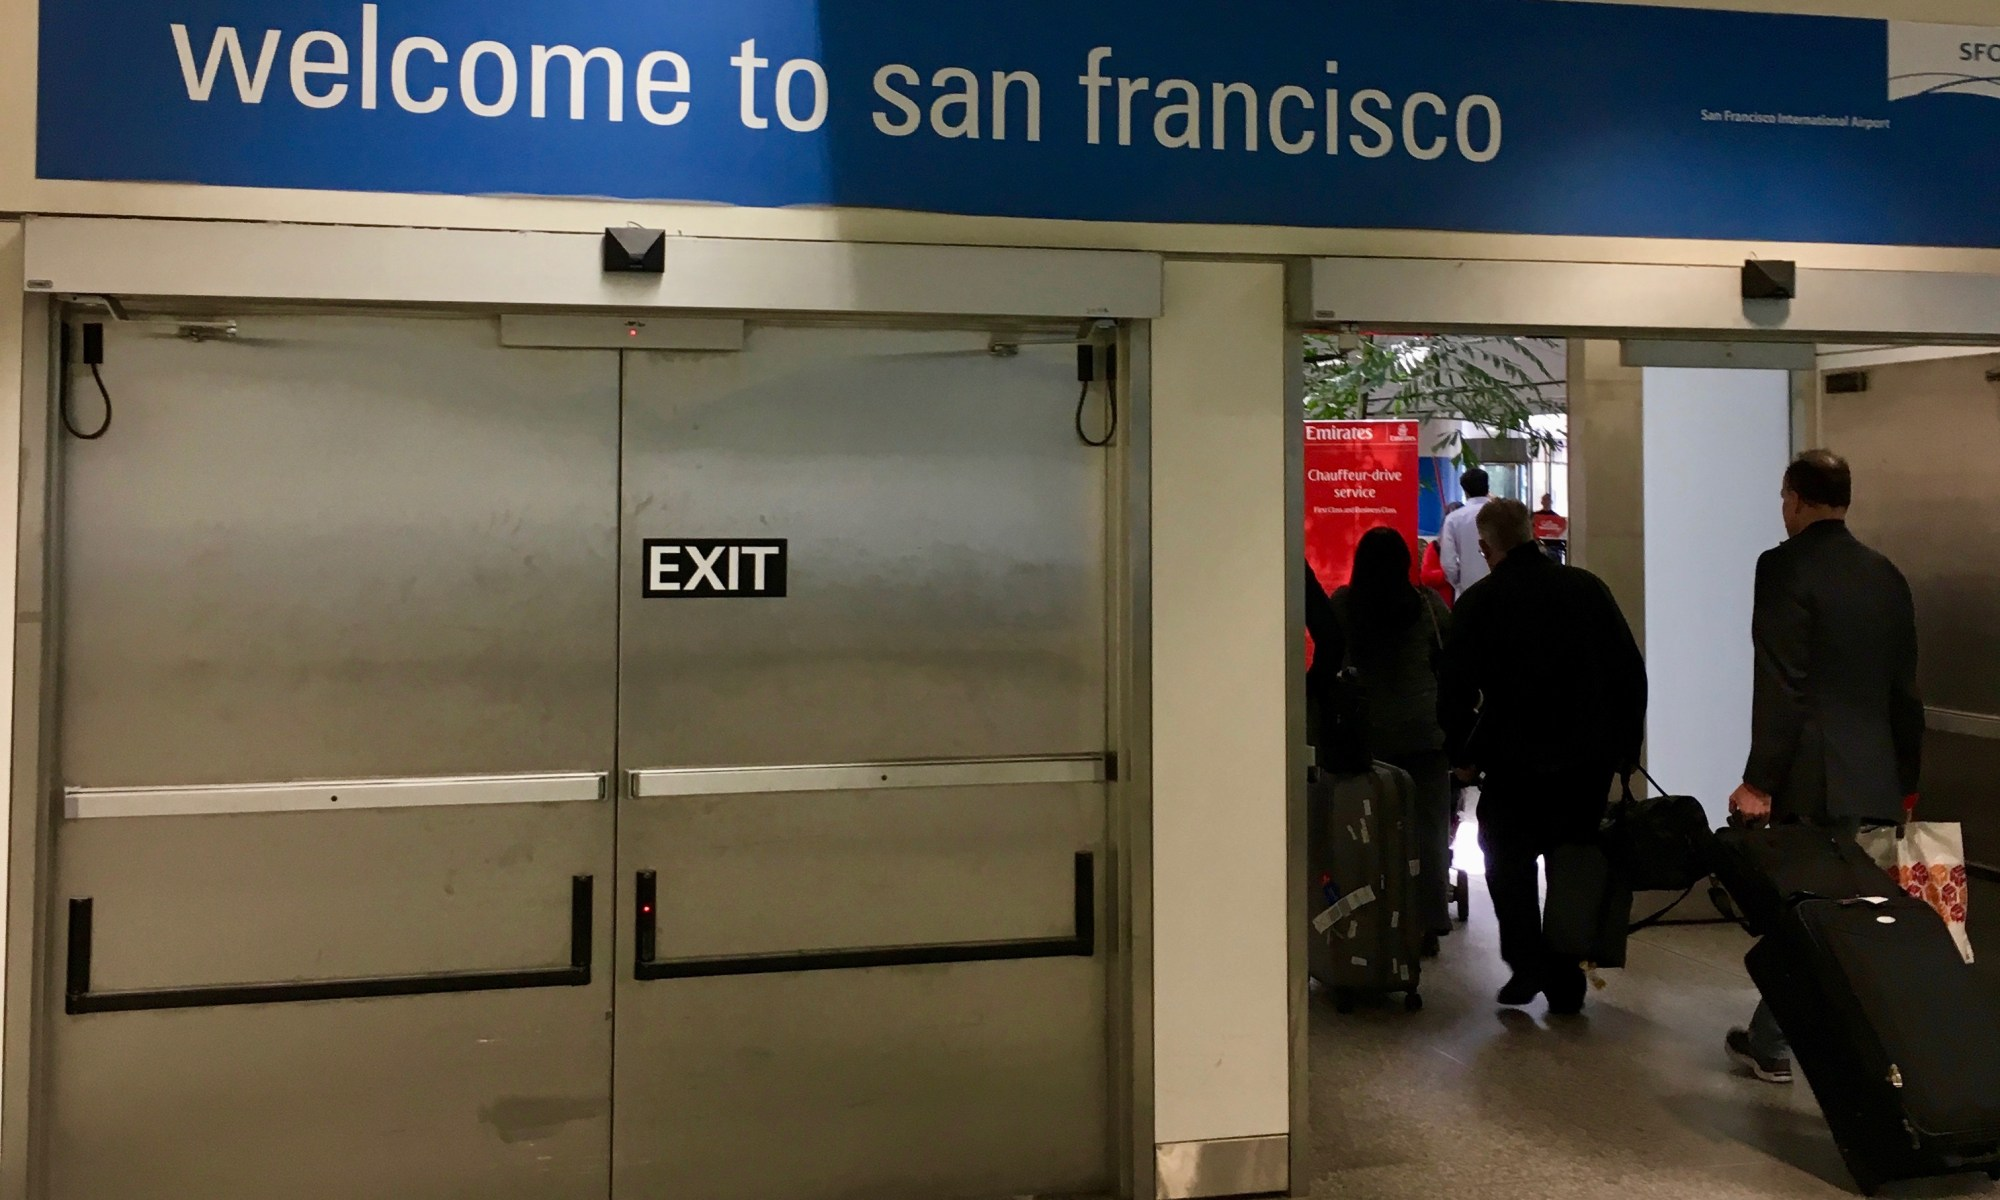 welcome to san francisco